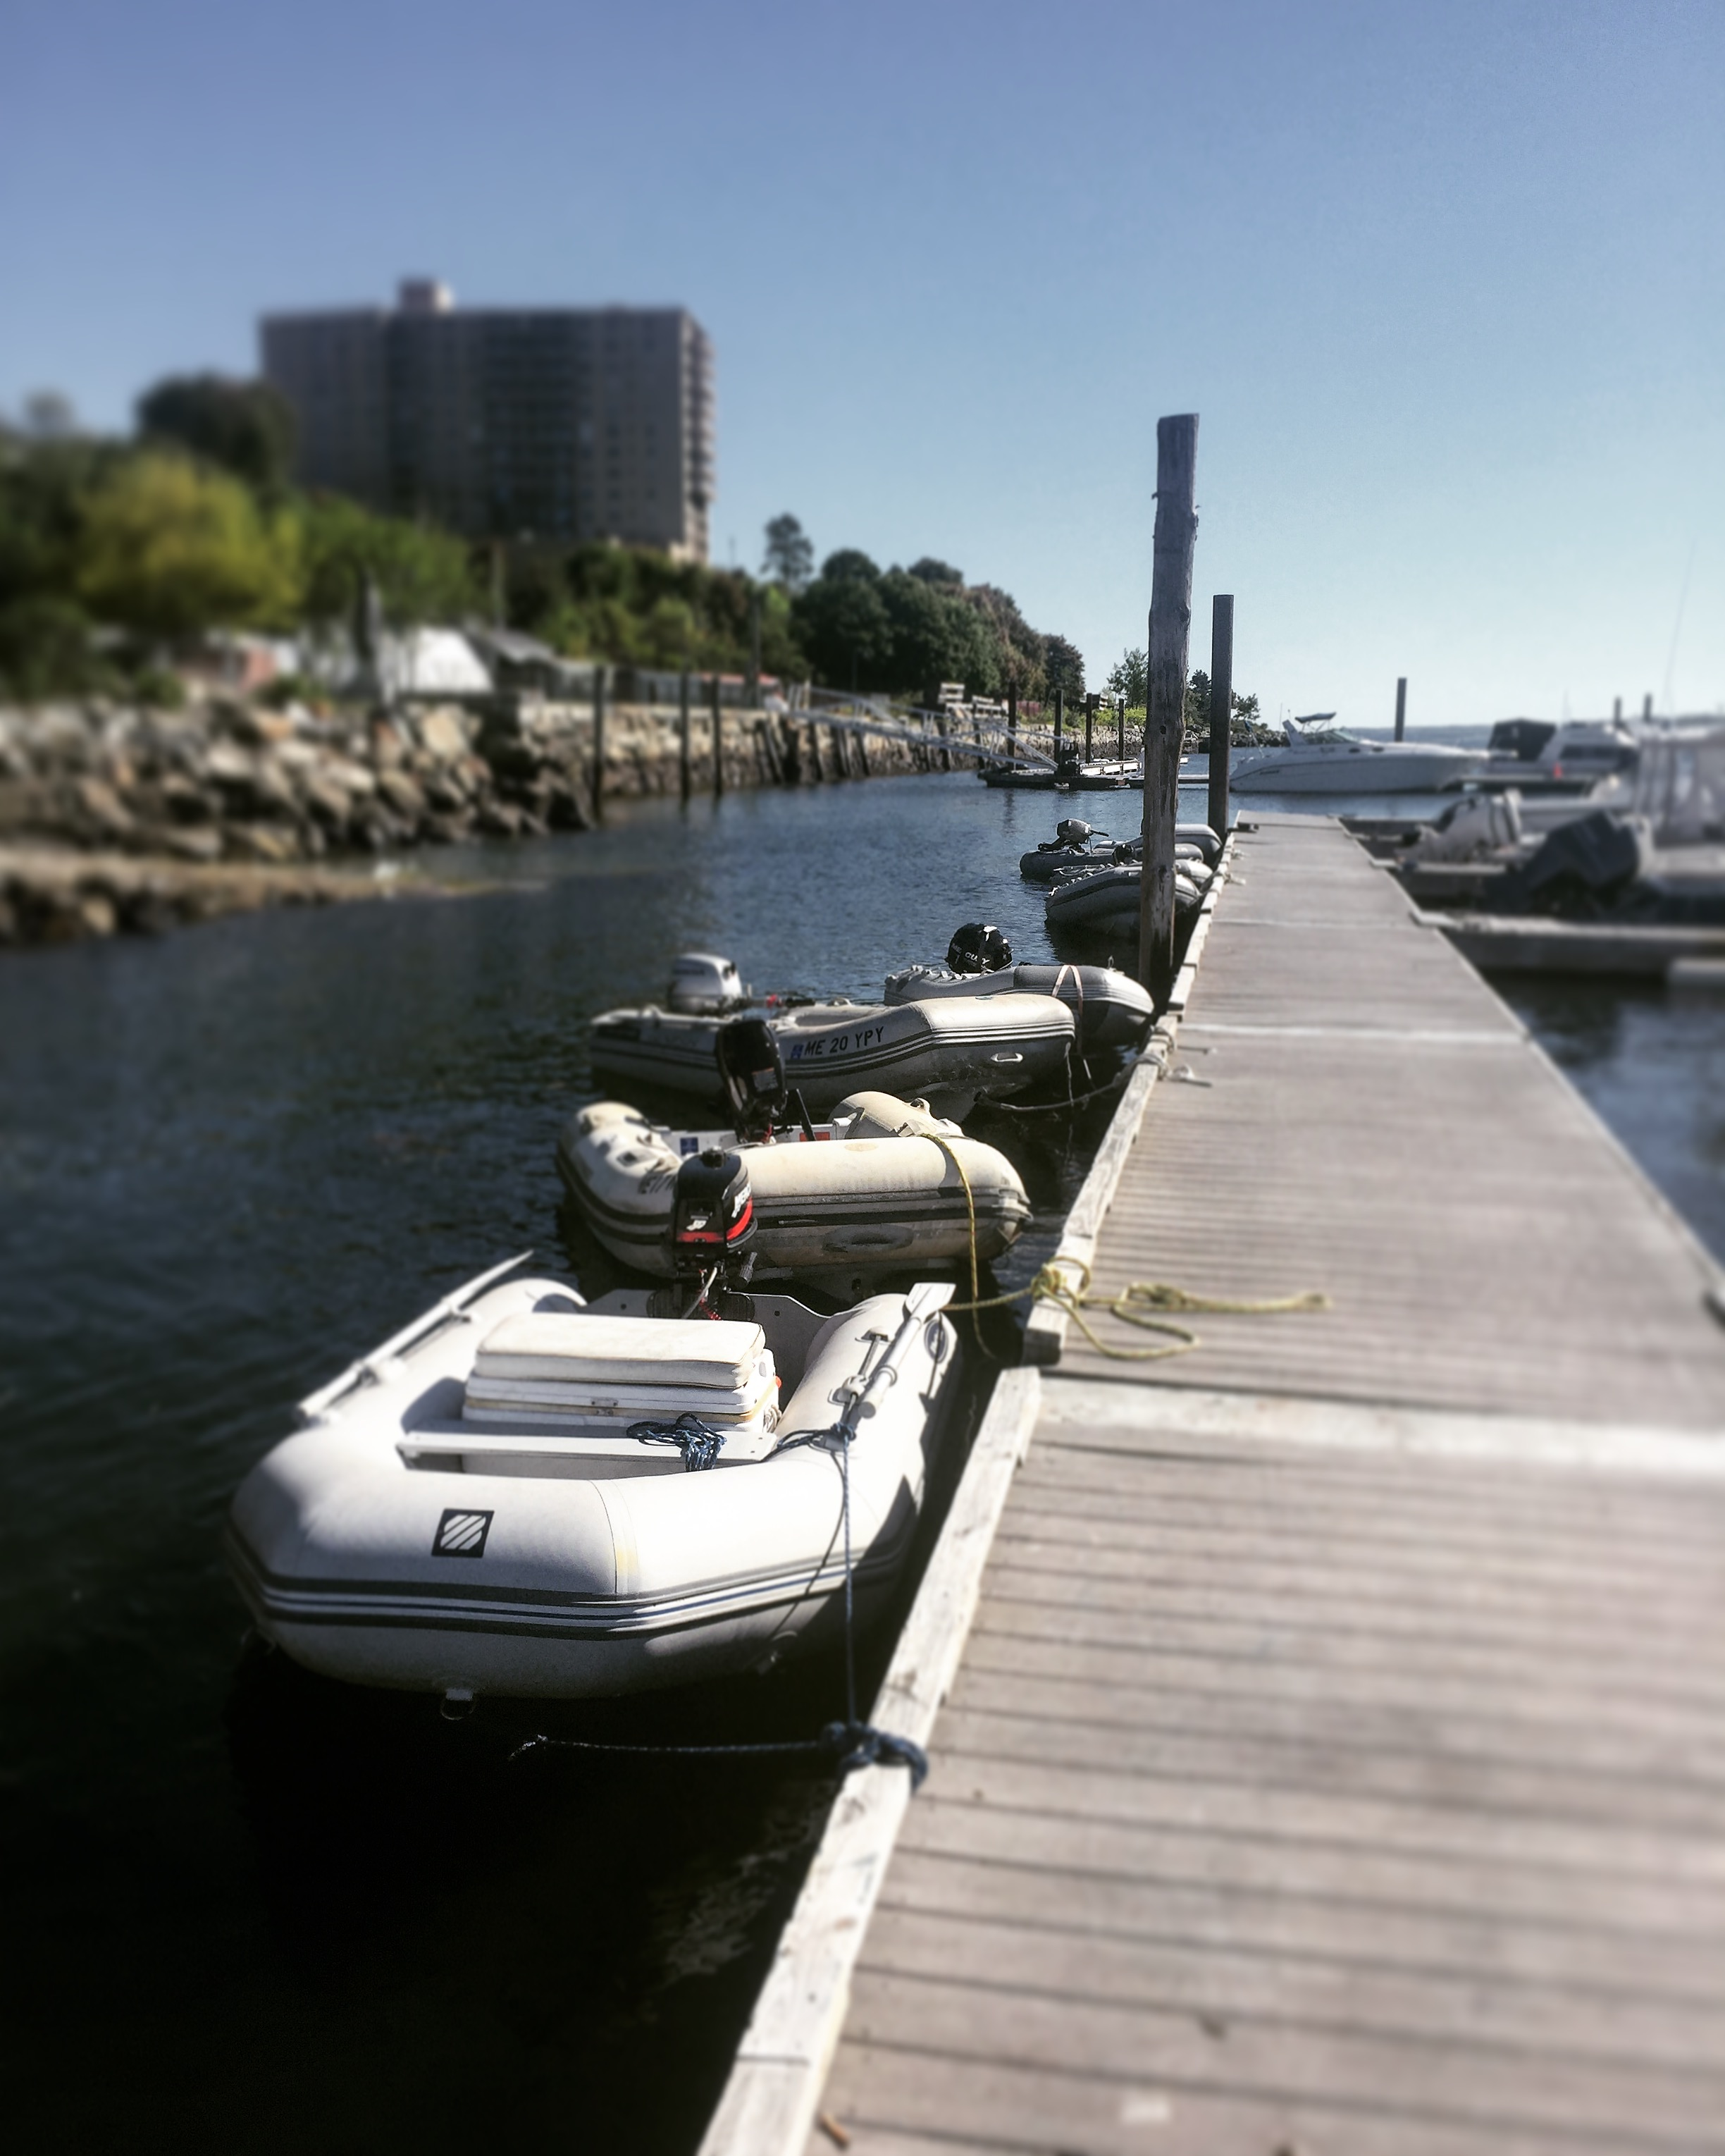 Coast Guard: Owner claims empty sailboat; search called off